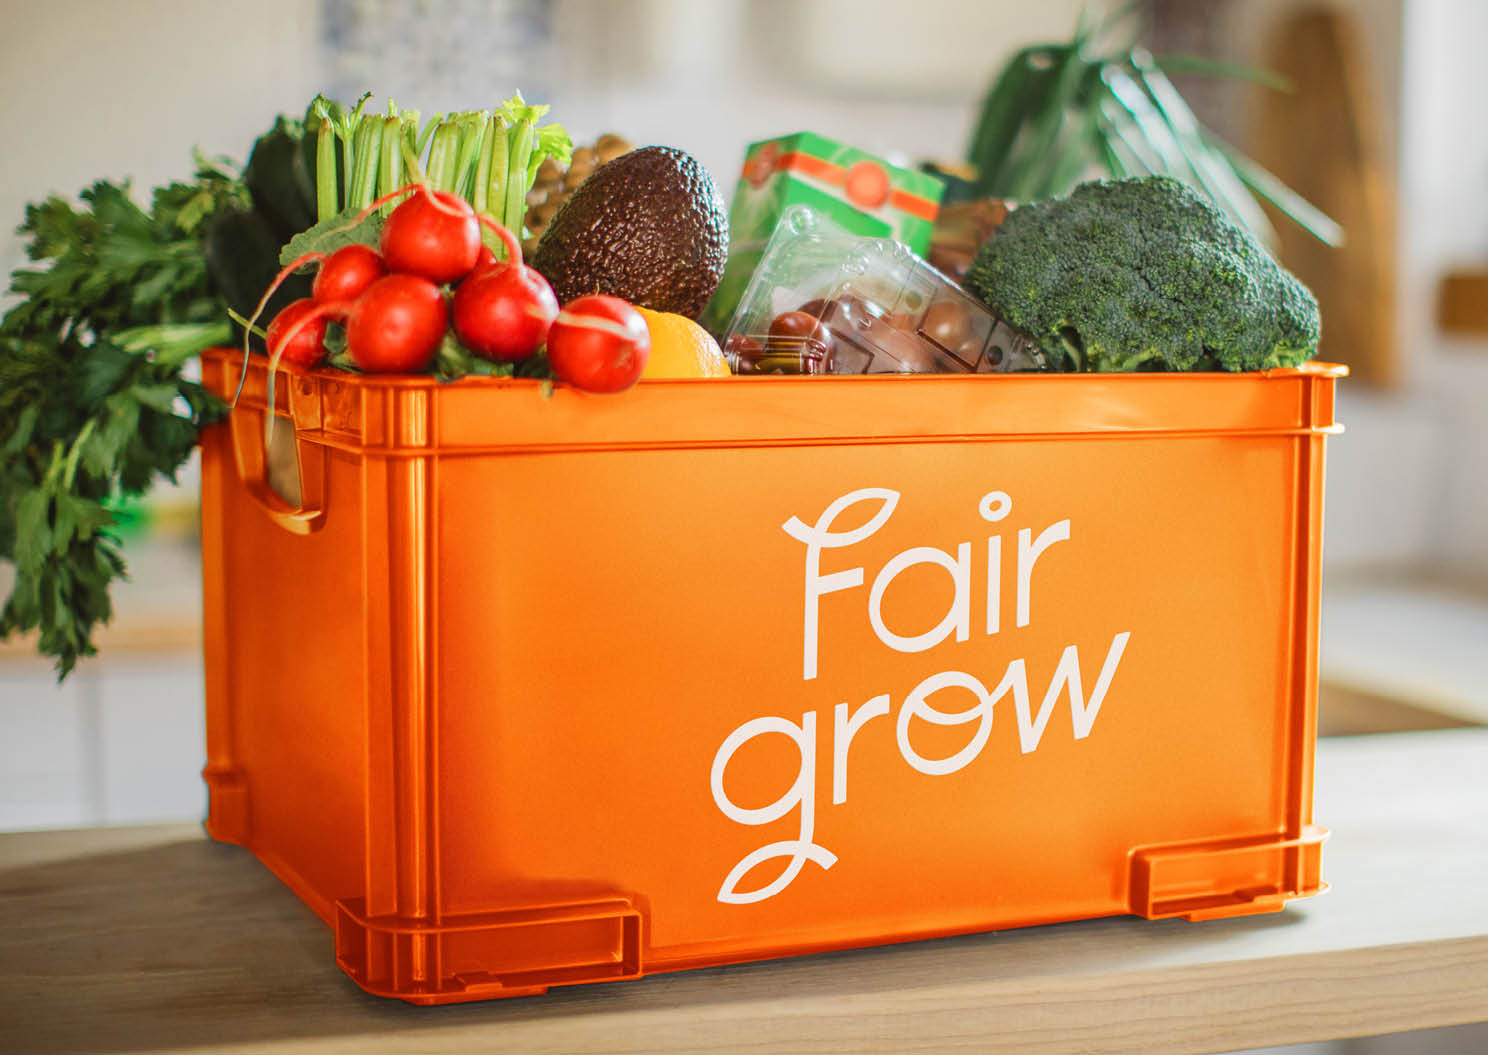 Fairgrow box of veg